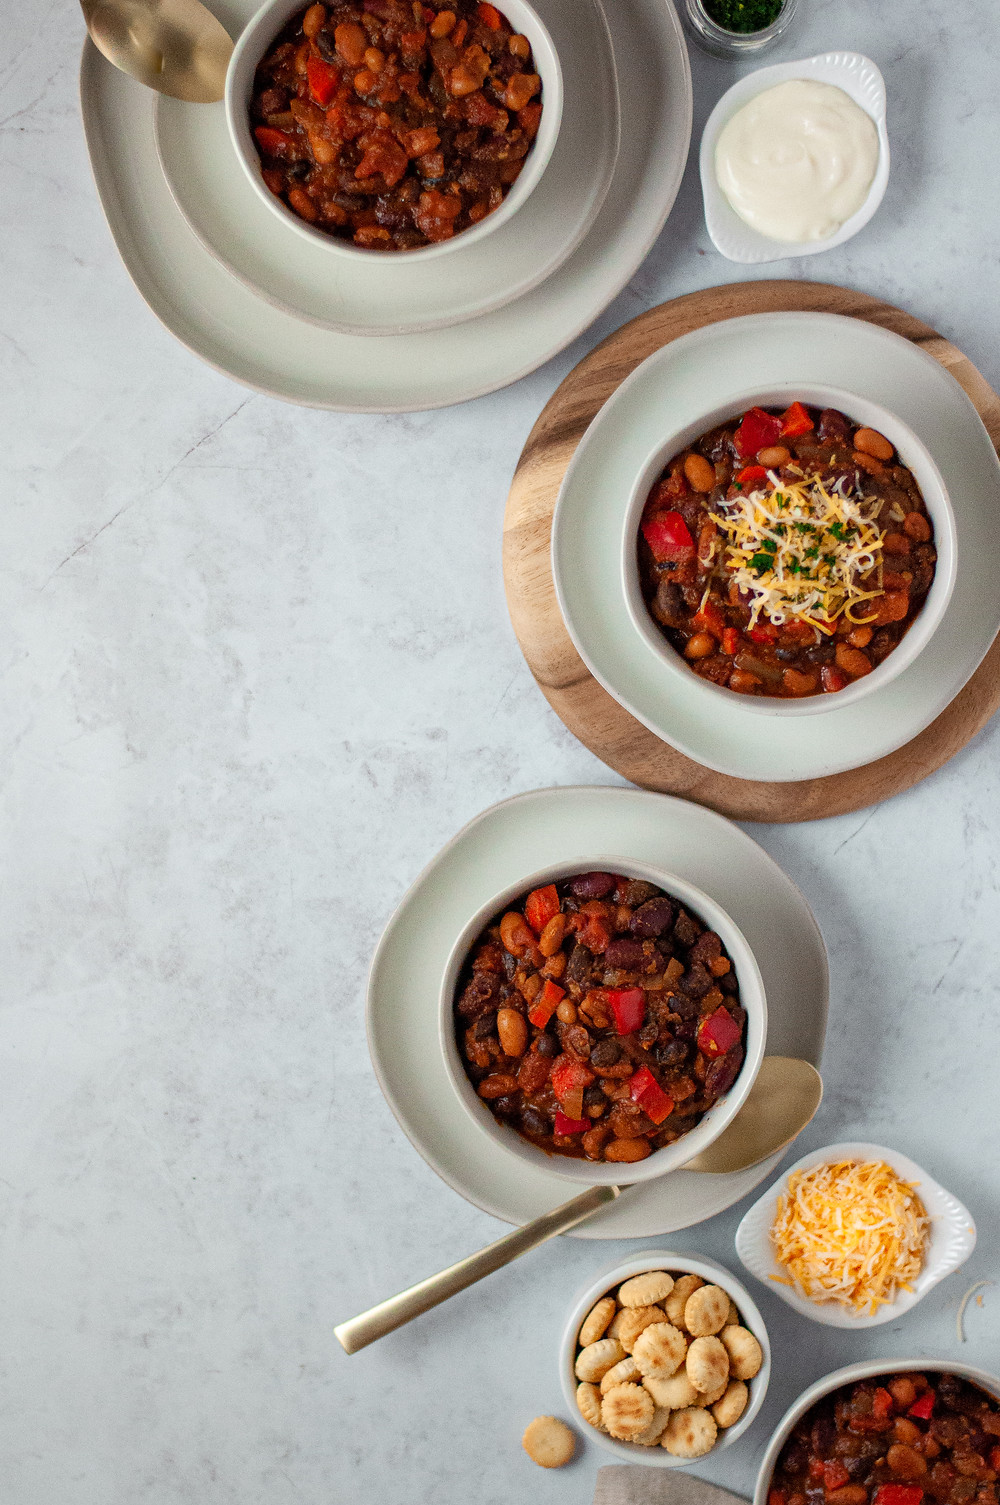 Top down view of 4 bowls of this veggie chili recipe, with a mixture of toppings both on the chili and in small bowls on the side